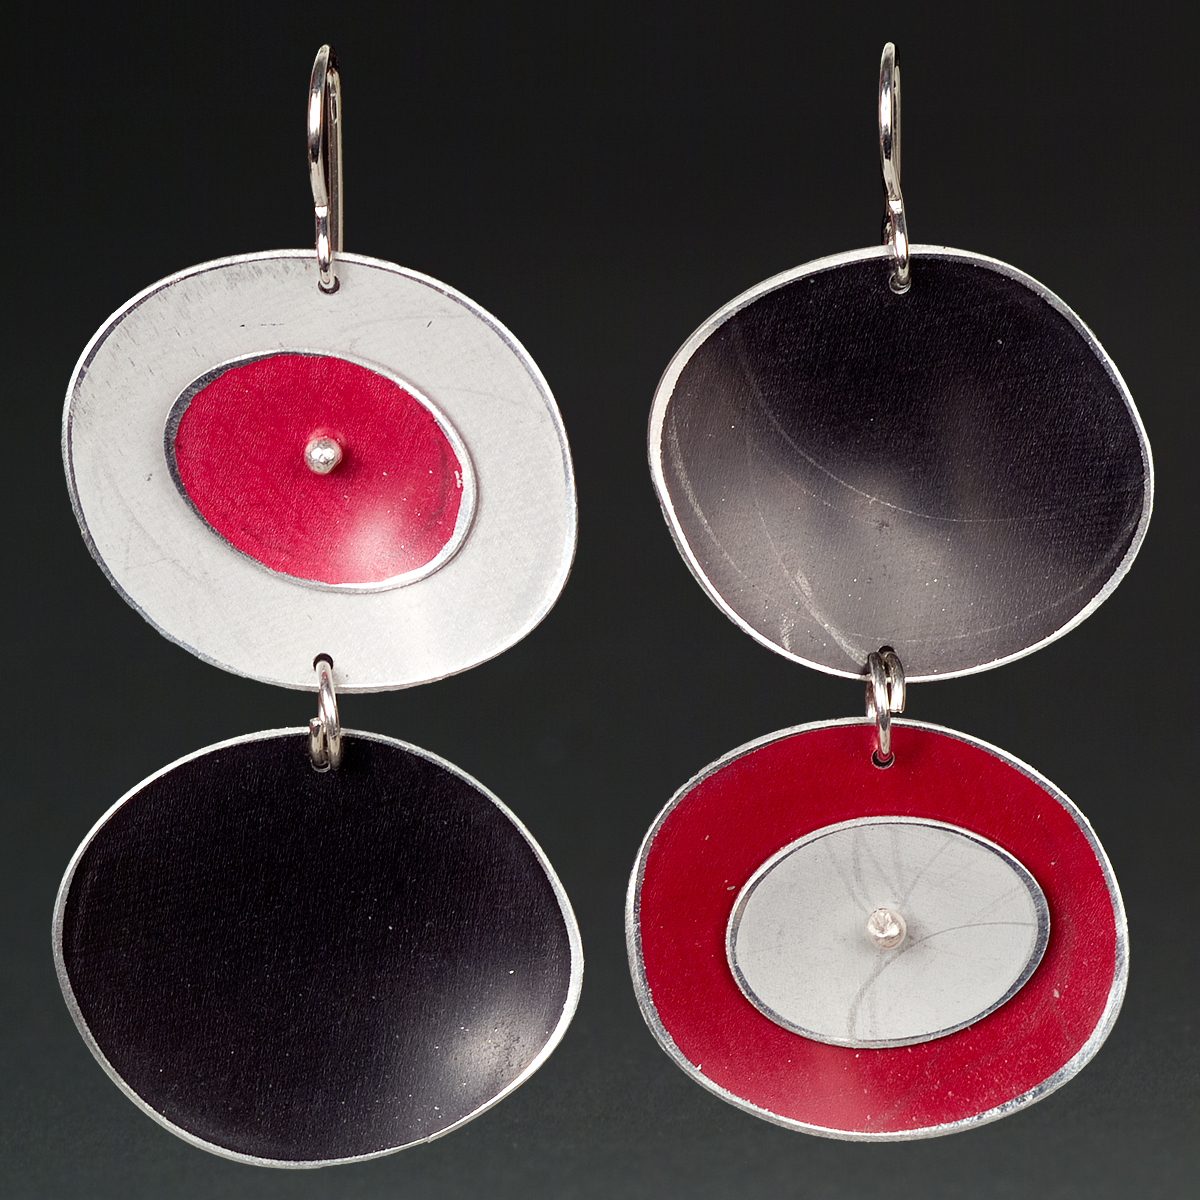 A - Silver, Black, Red